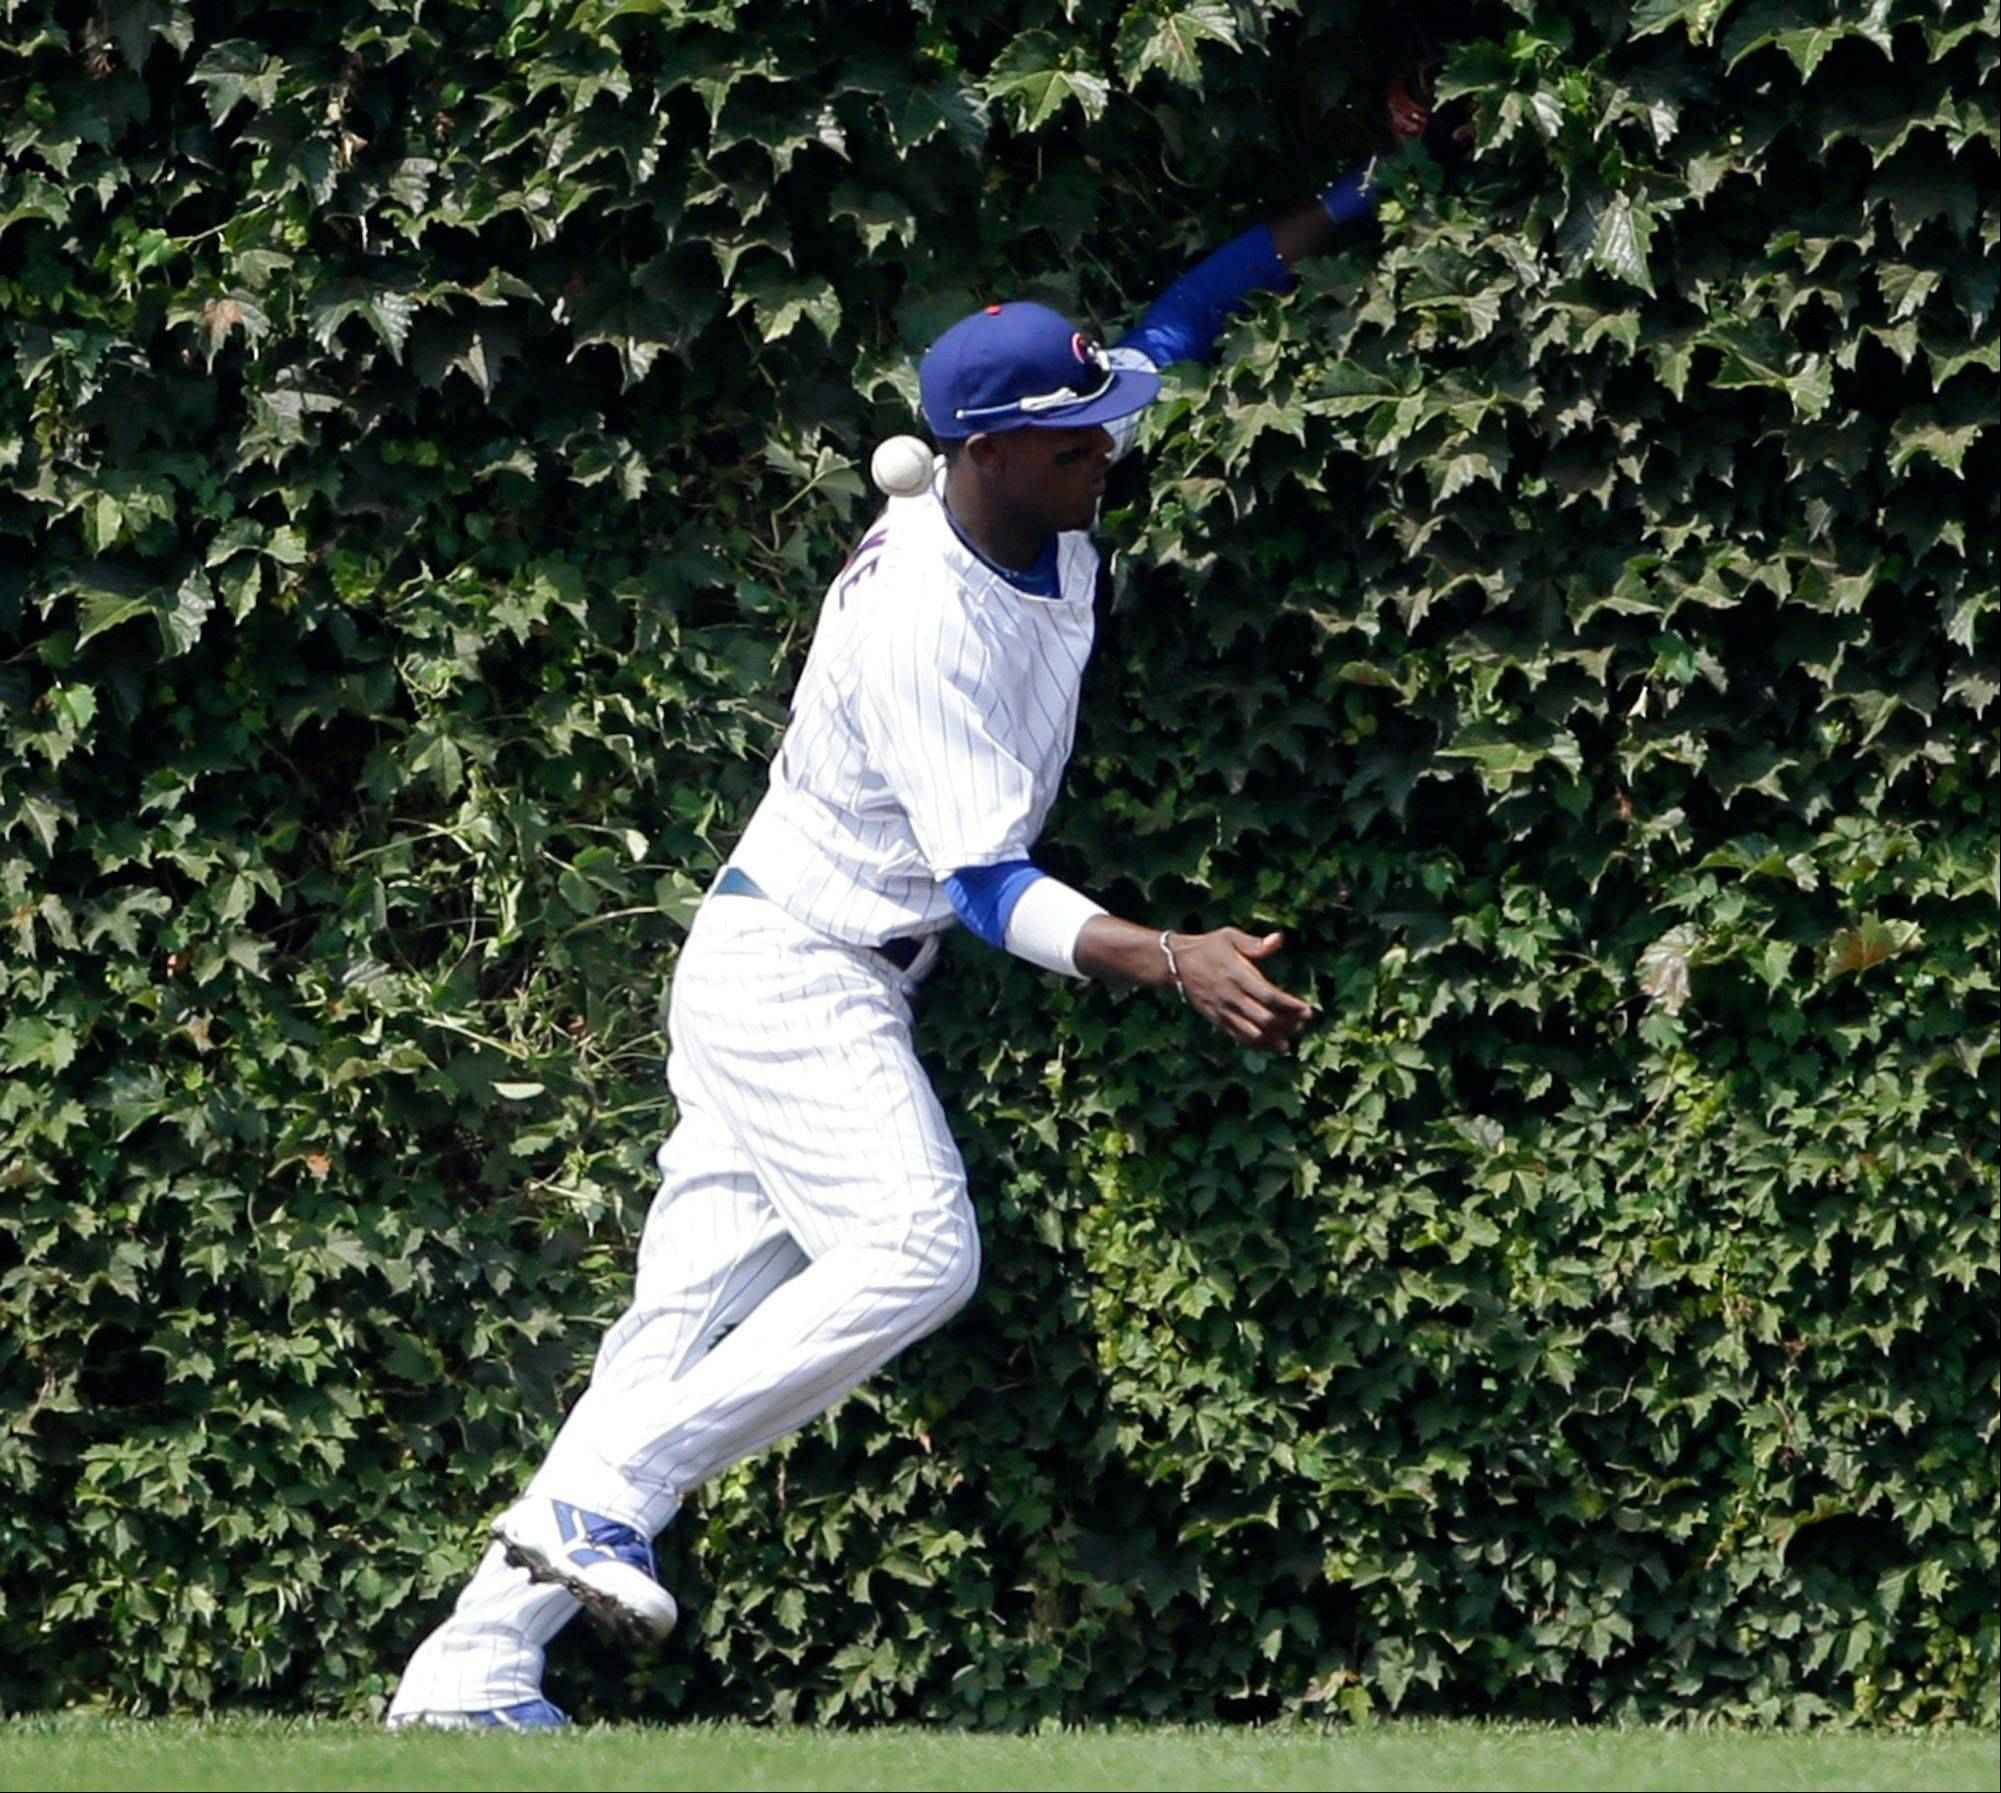 Chicago Cubs left fielder Junior Lake can't make the catch on a double hit Los Angeles Dodgers' Adrian Gonzalez during the first inning of a baseball game on Friday, Aug. 2, 2013, in Chicago.